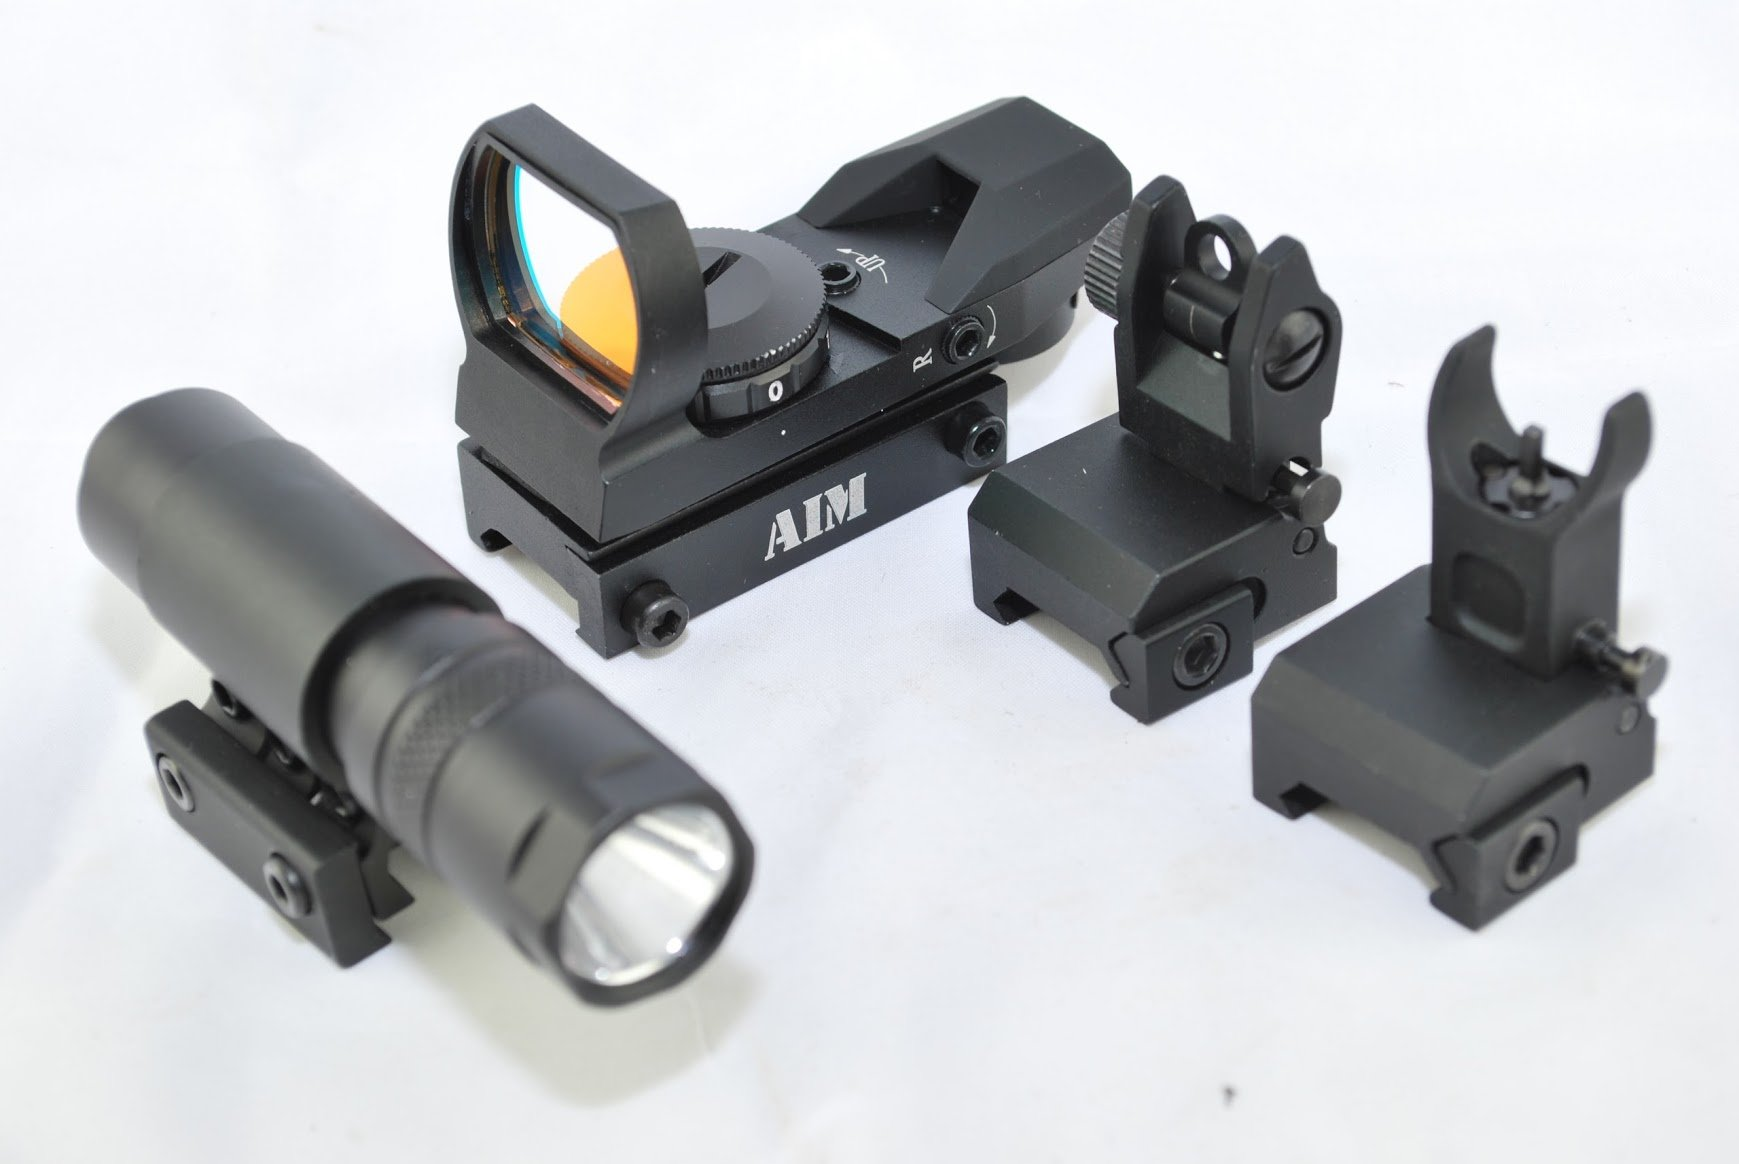 TacBro - AIM Reflex Dual-Illuminated Sight + AIM 90 Lumen Flahslight + AIM AR Low Profile Front/Rear Flip-Up Sight by TACBRO